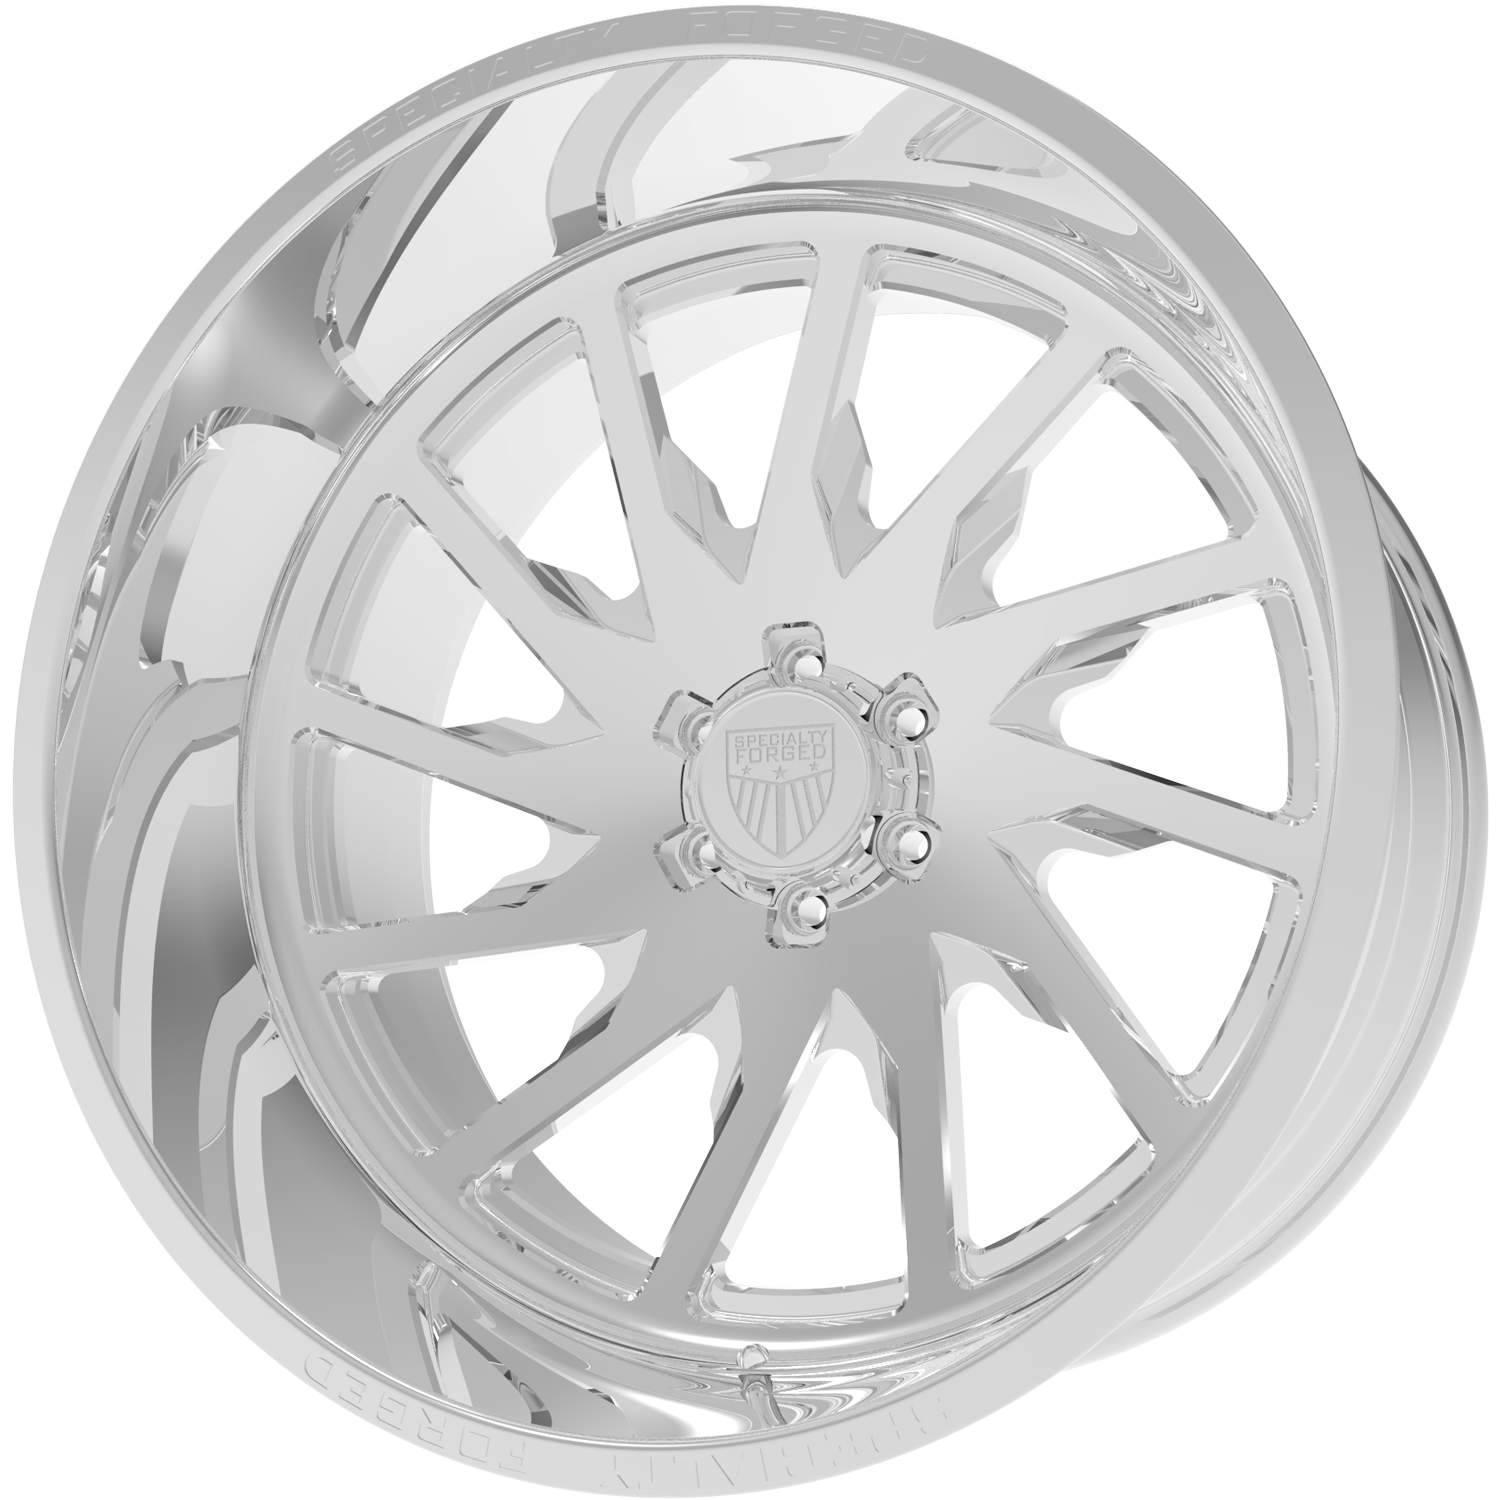 Specialty Forged C704